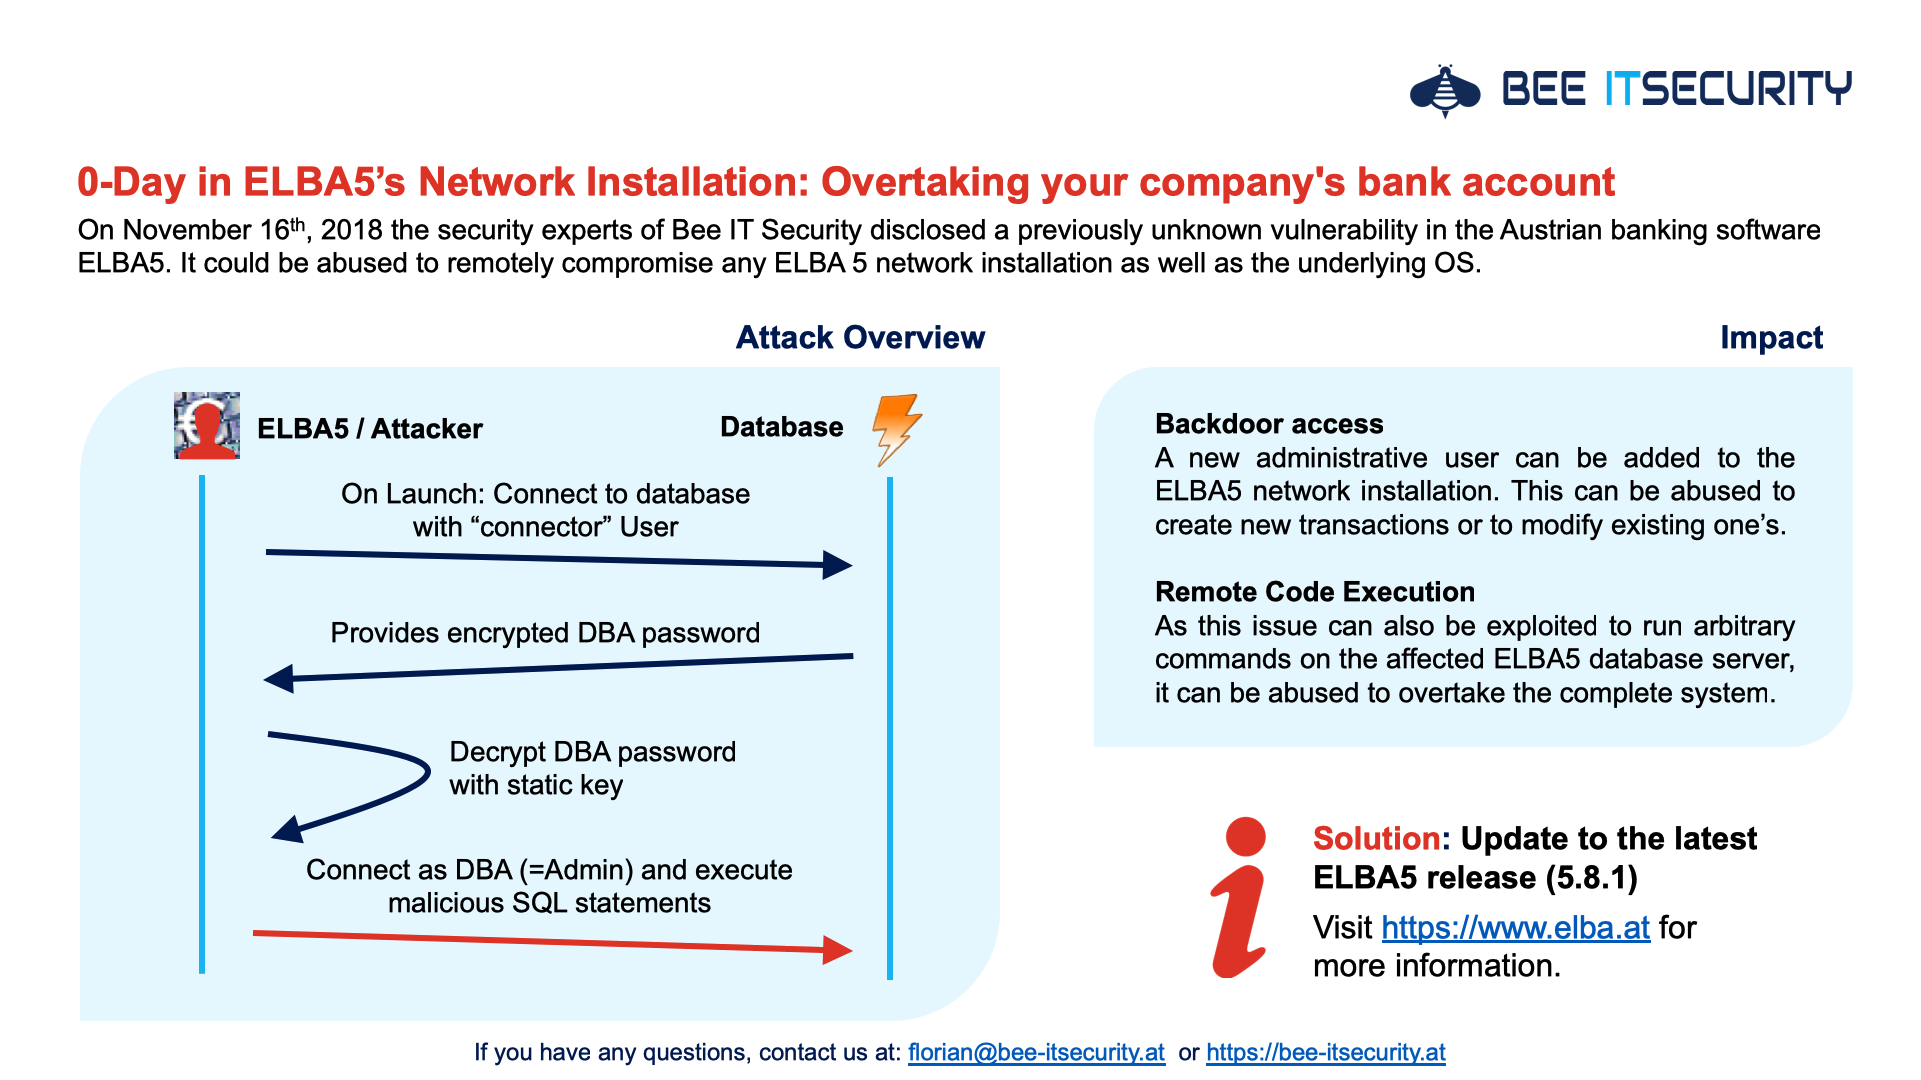 0-Day in ELBA5's Network Installation: Overtaking your